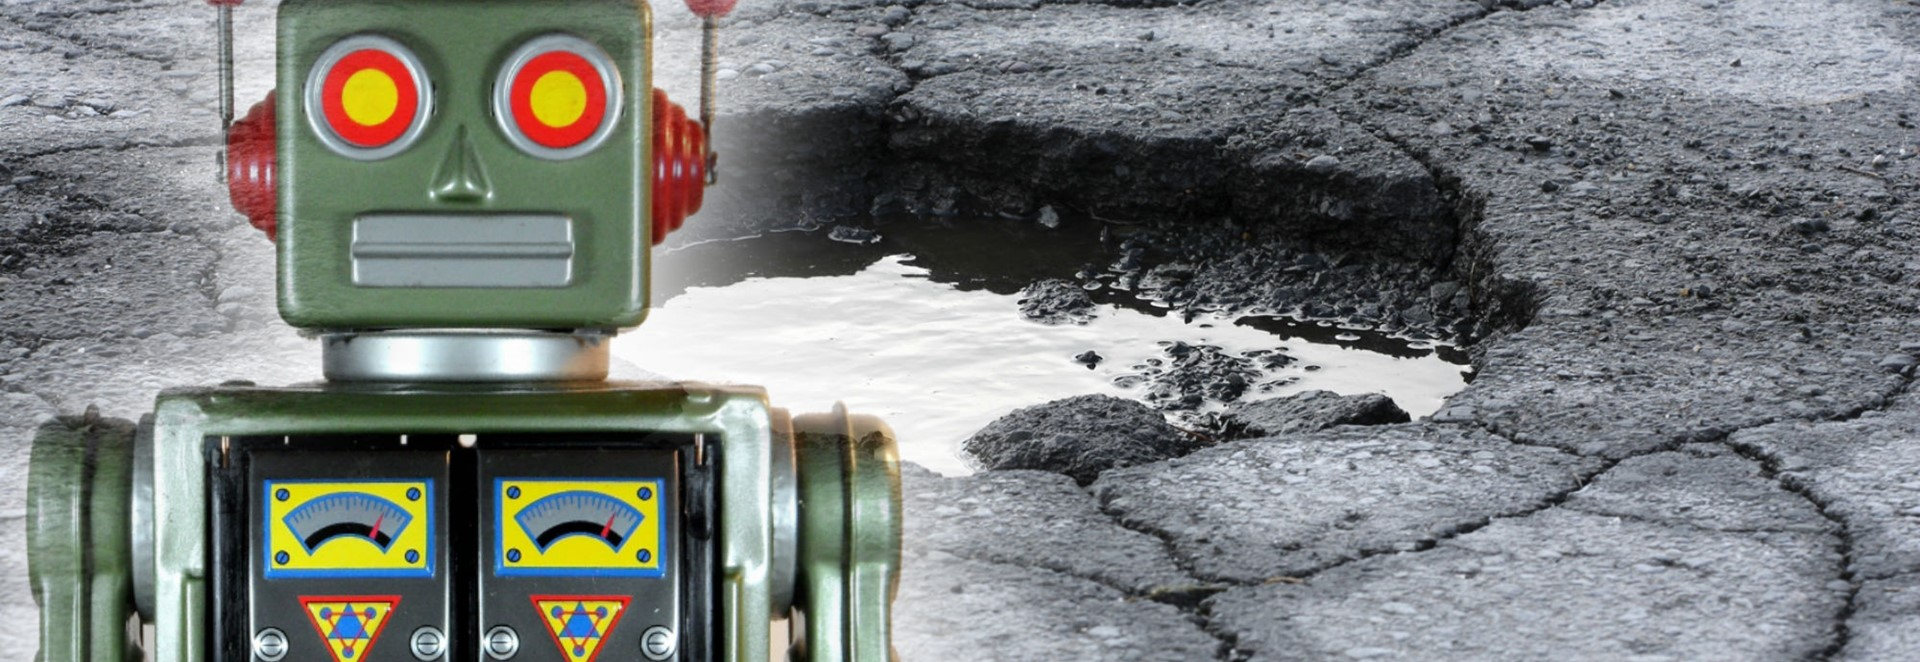 Leeds University to develop drones that can fix potholes